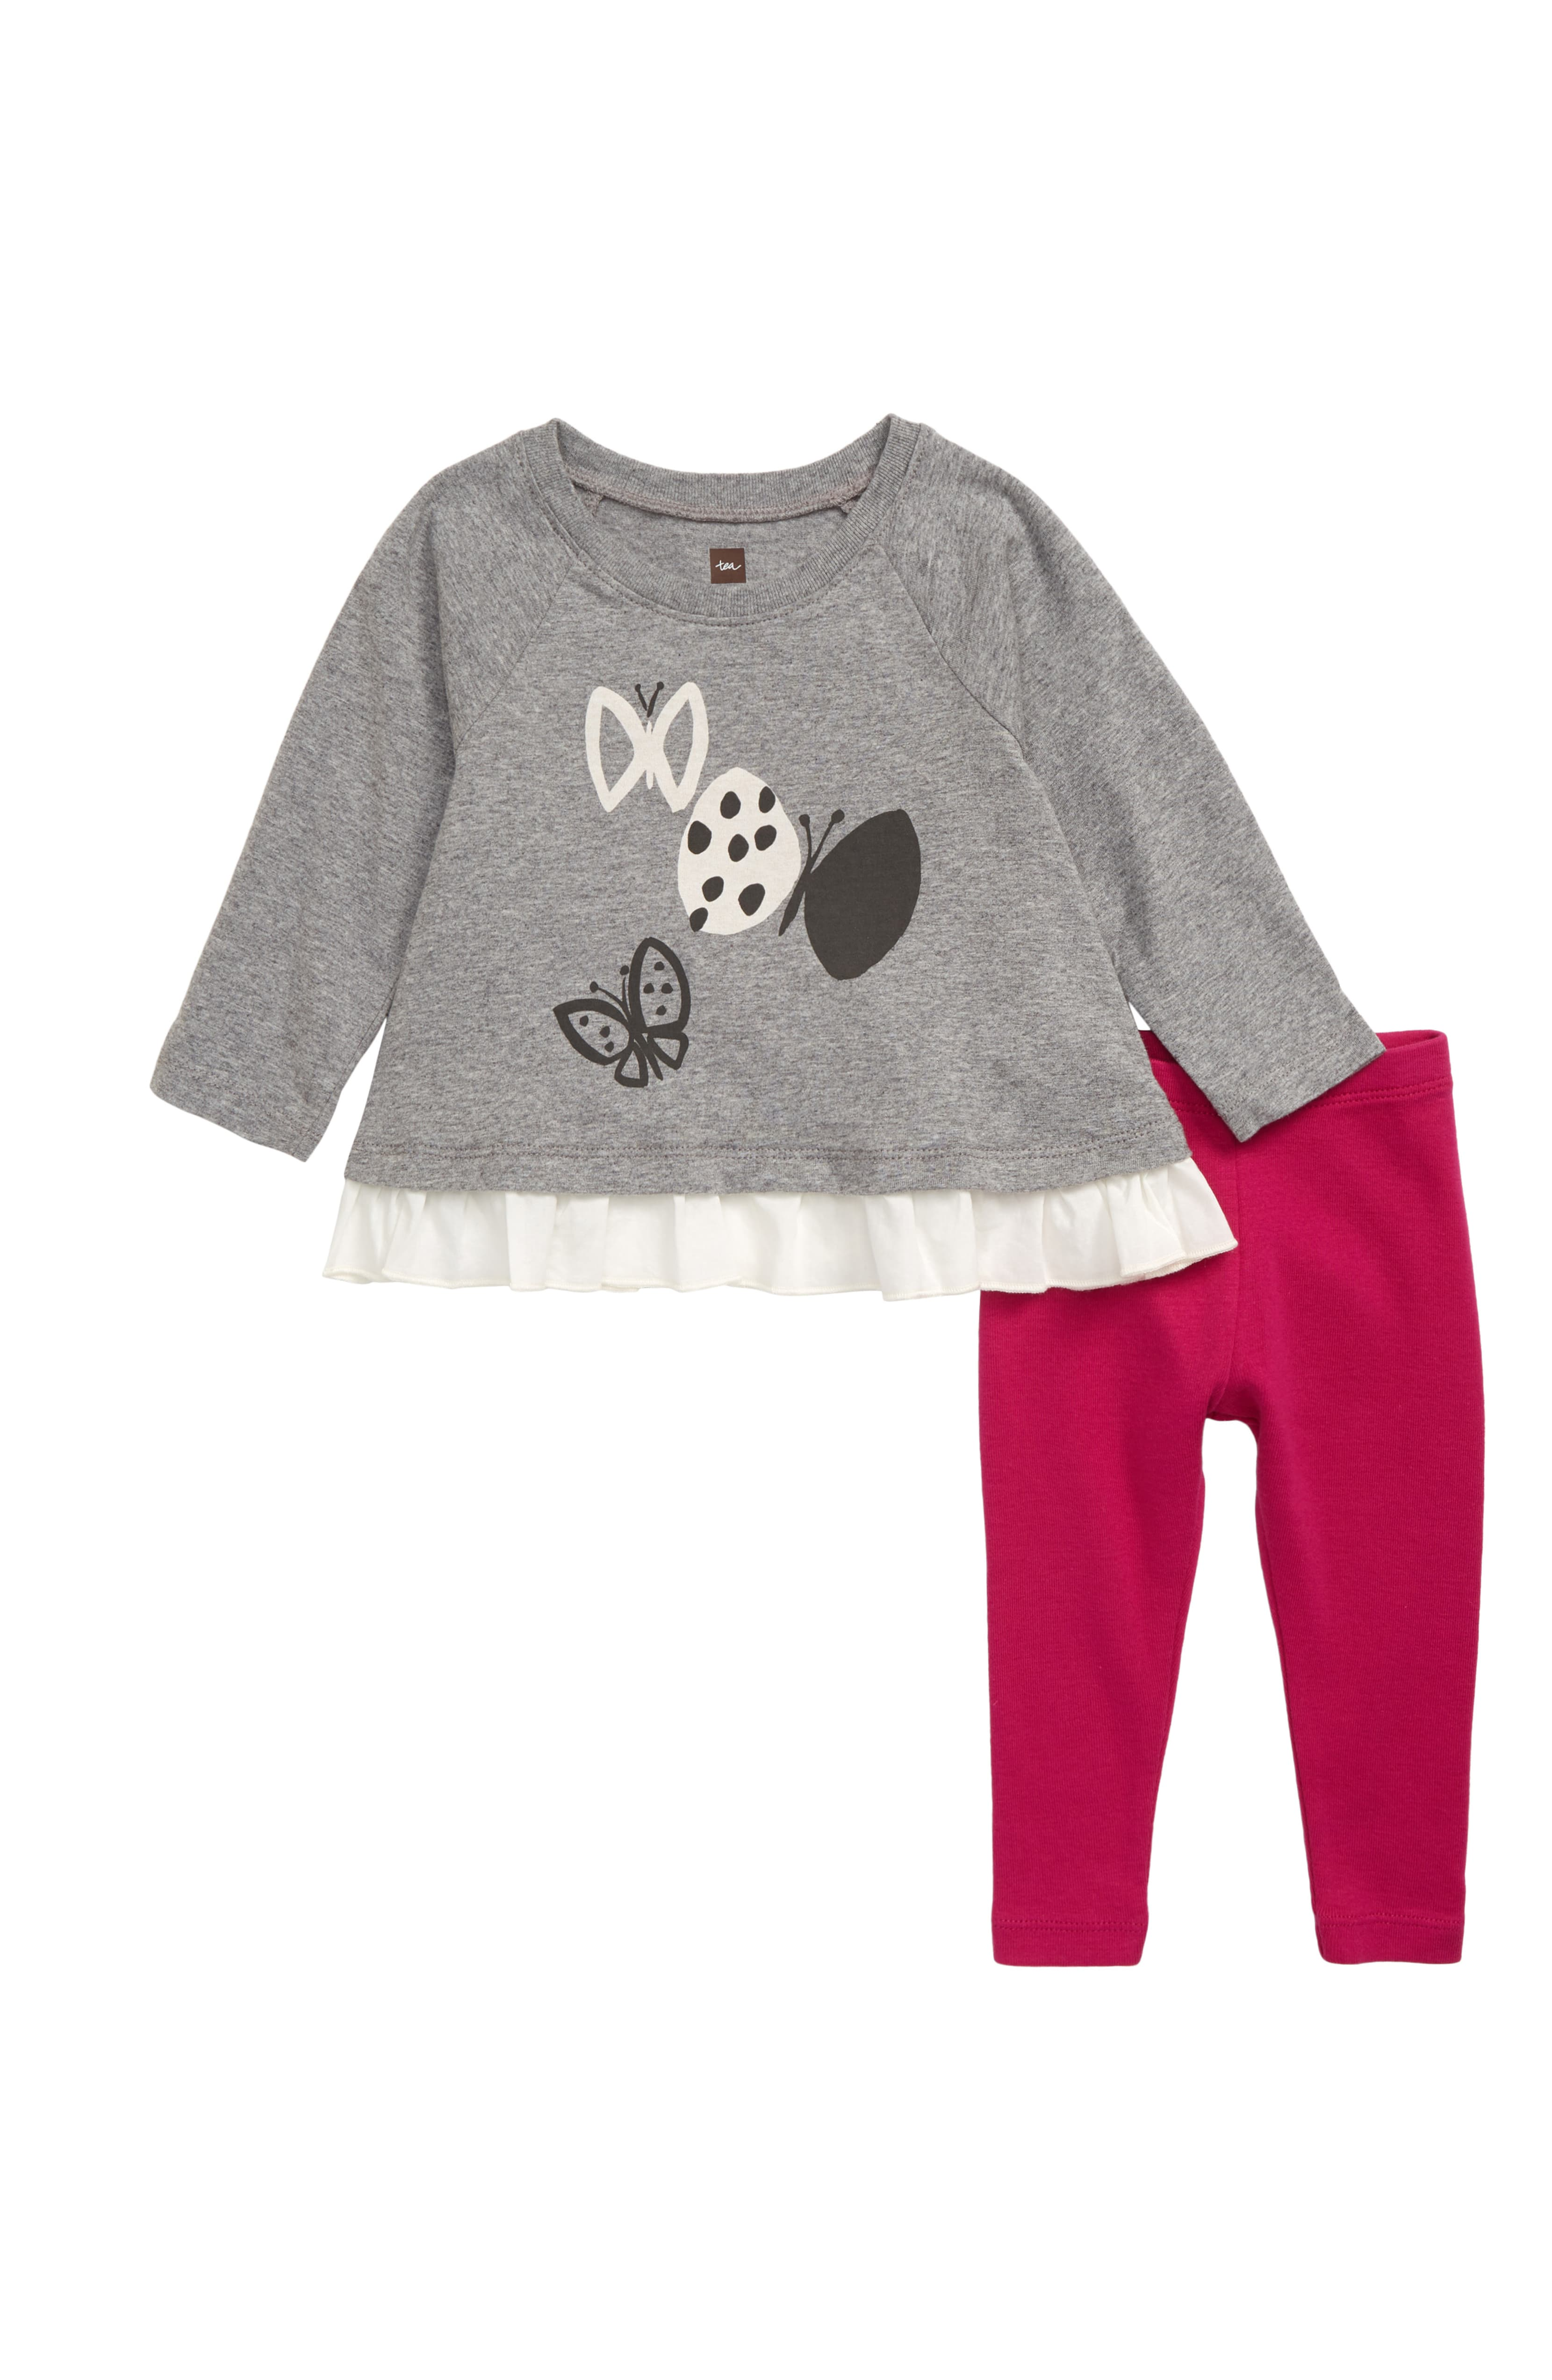 Tea Collection Butterfly Graphic Top & Leggings Set